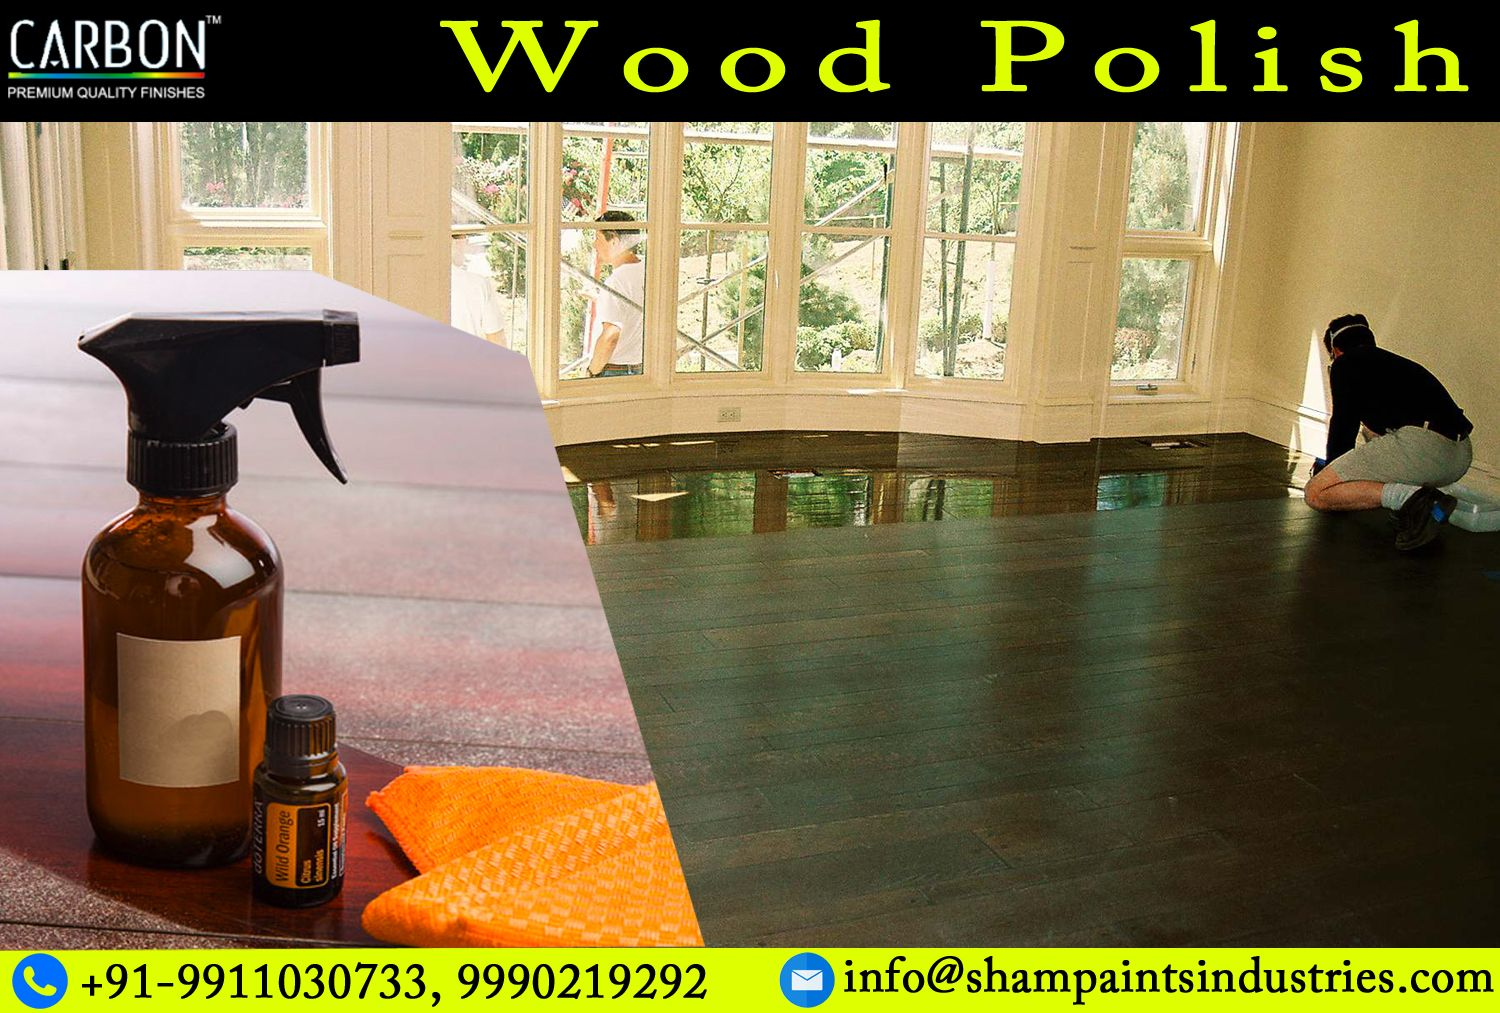 We provide high quality Wood Polish that we supply all